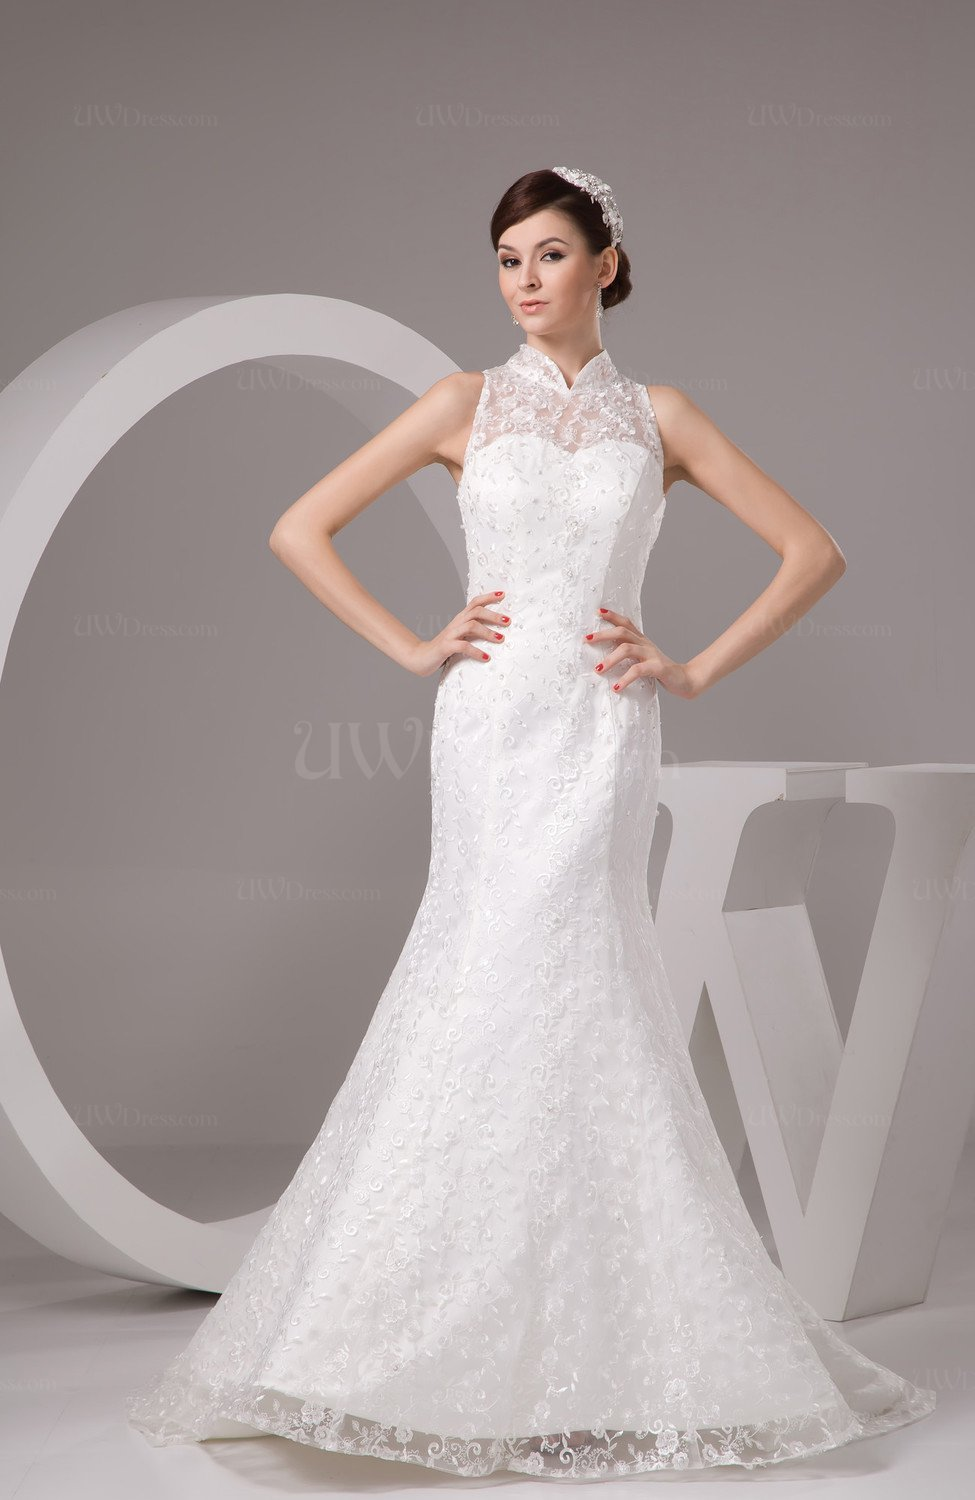 Lace bridal gowns illusion classic full figure fall for Petite lace wedding dresses